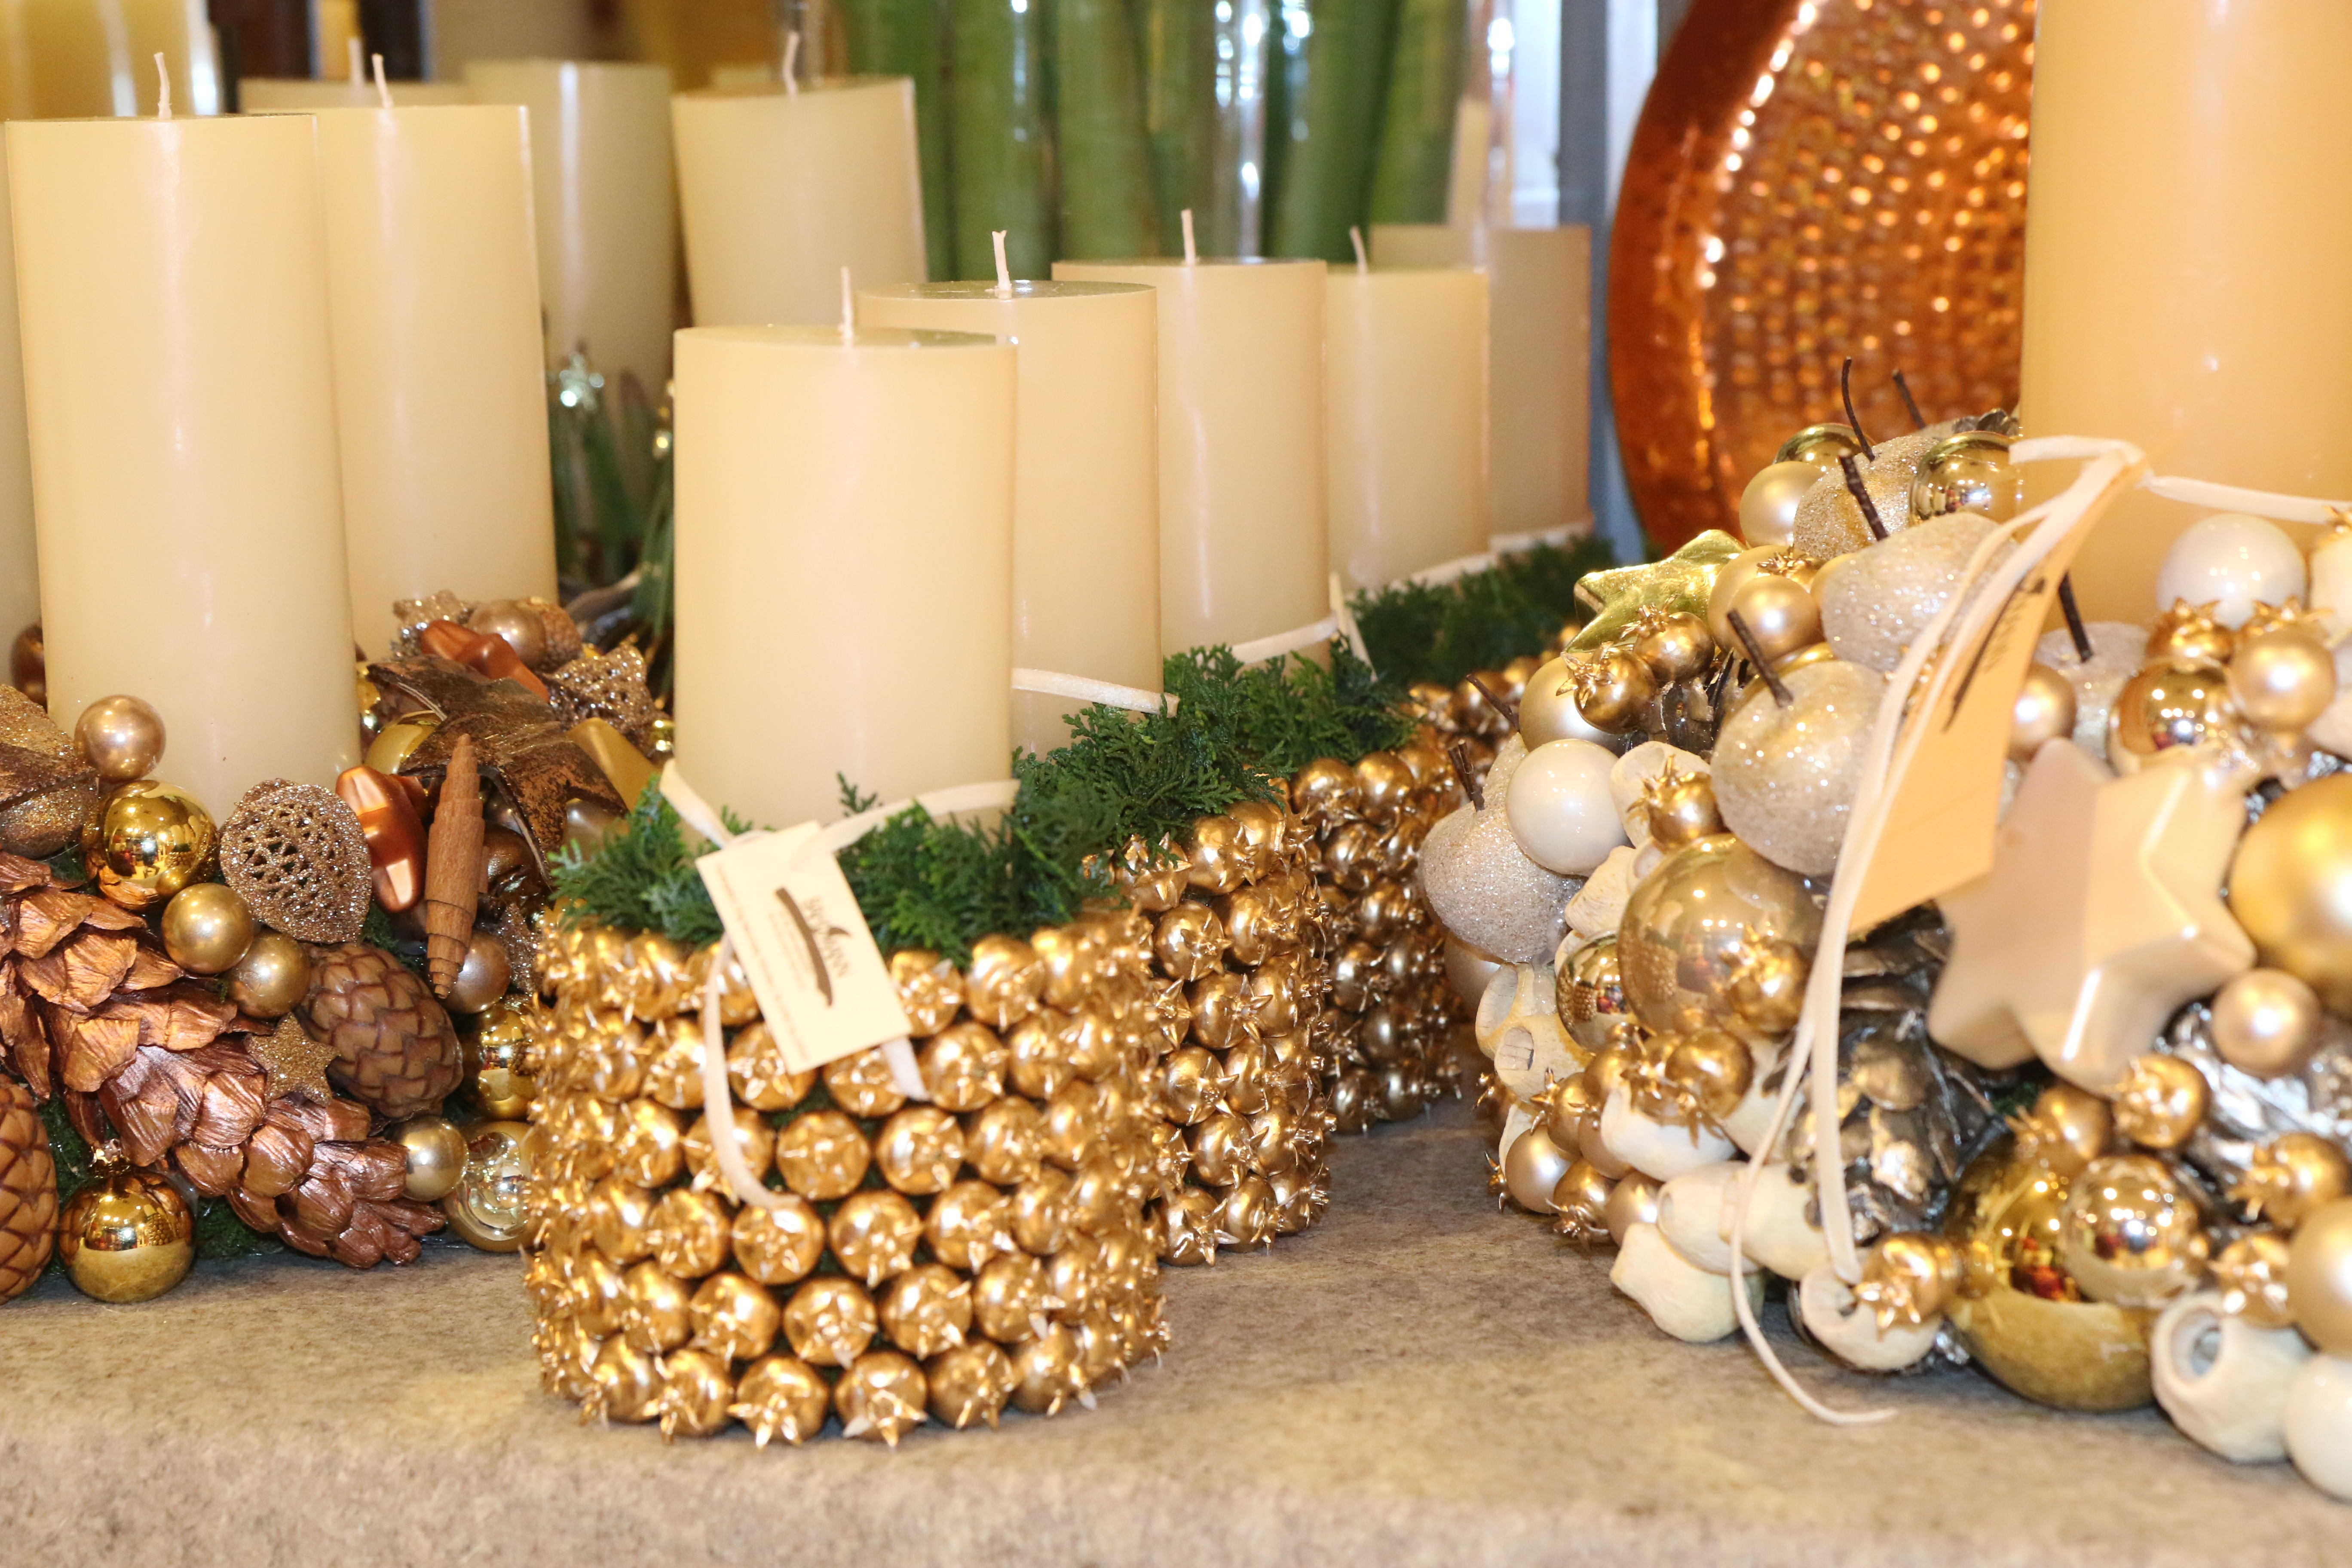 Blumen Bahlmann Advent Stimmung gold